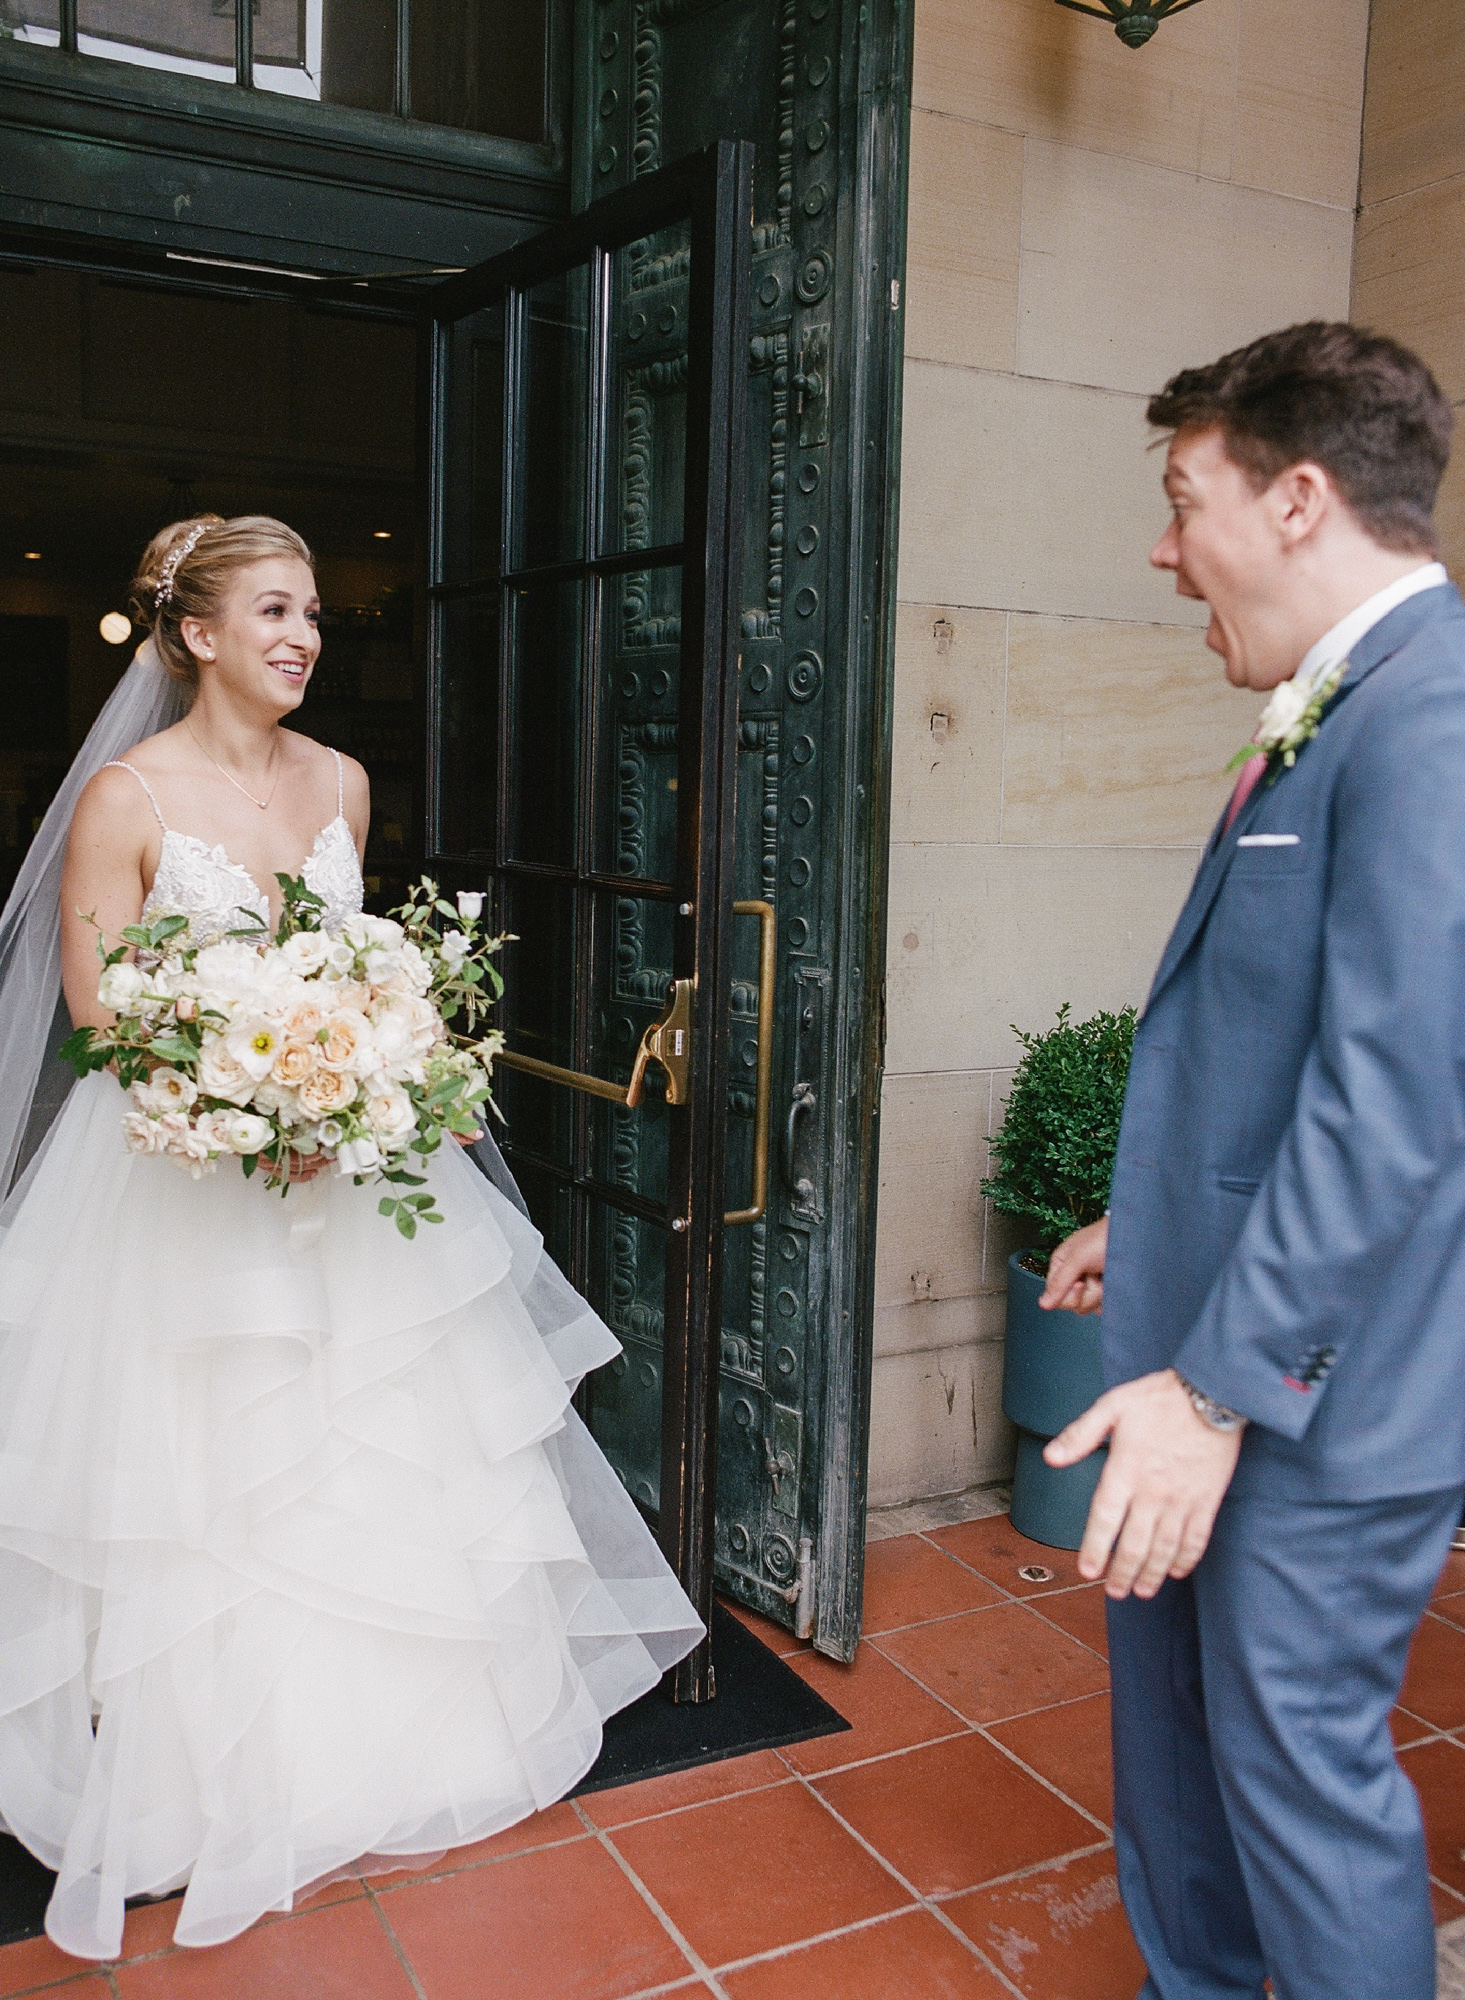 FIrstLookLineHotelWeddingDC2019PlumePhotography